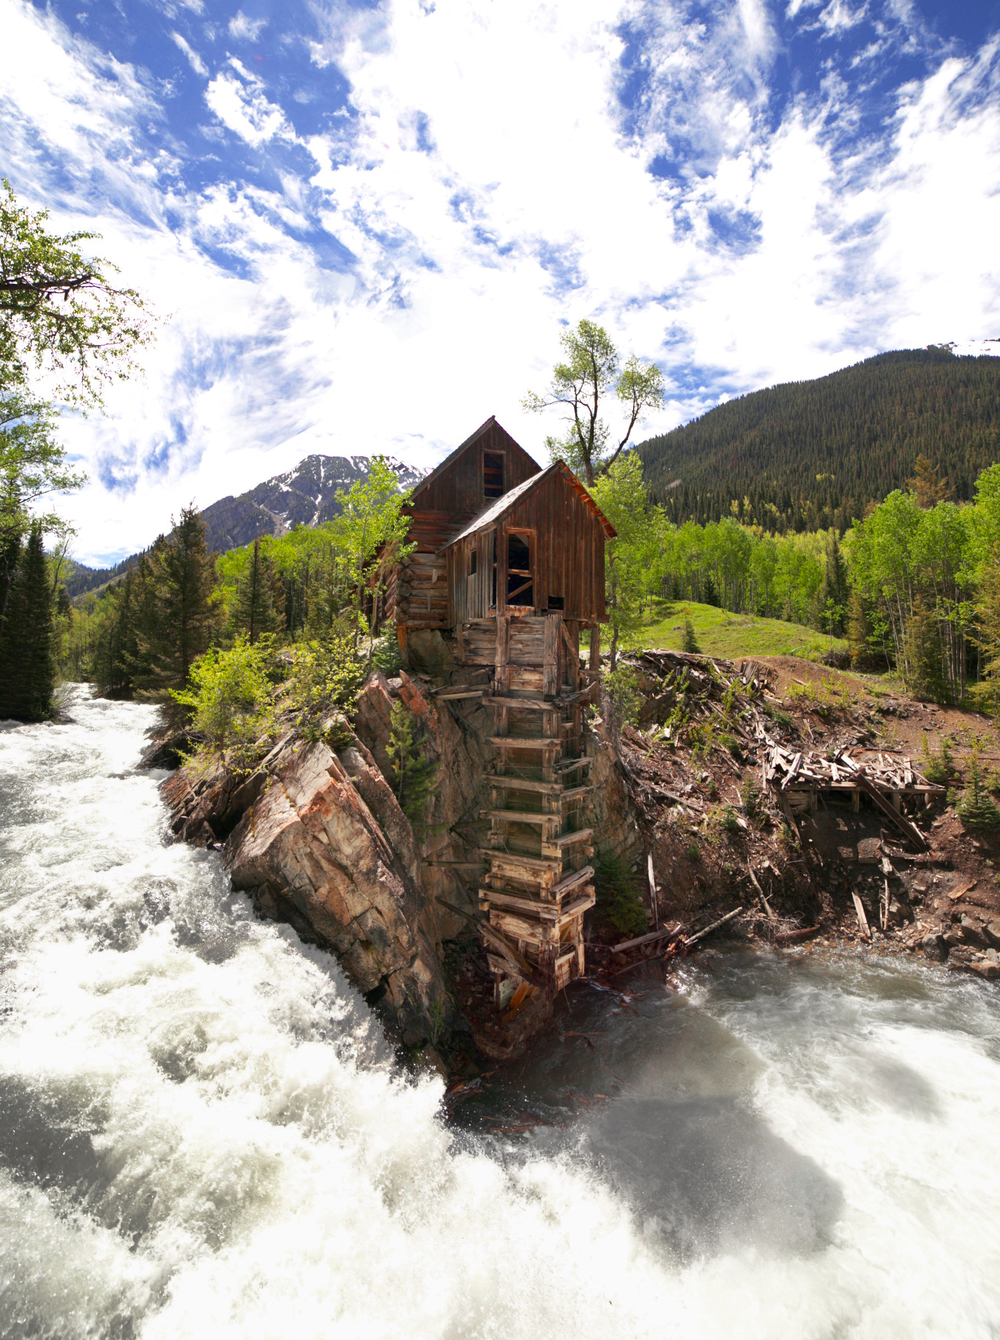 The Crystal Mill and the Crystal River, photographed in summer.